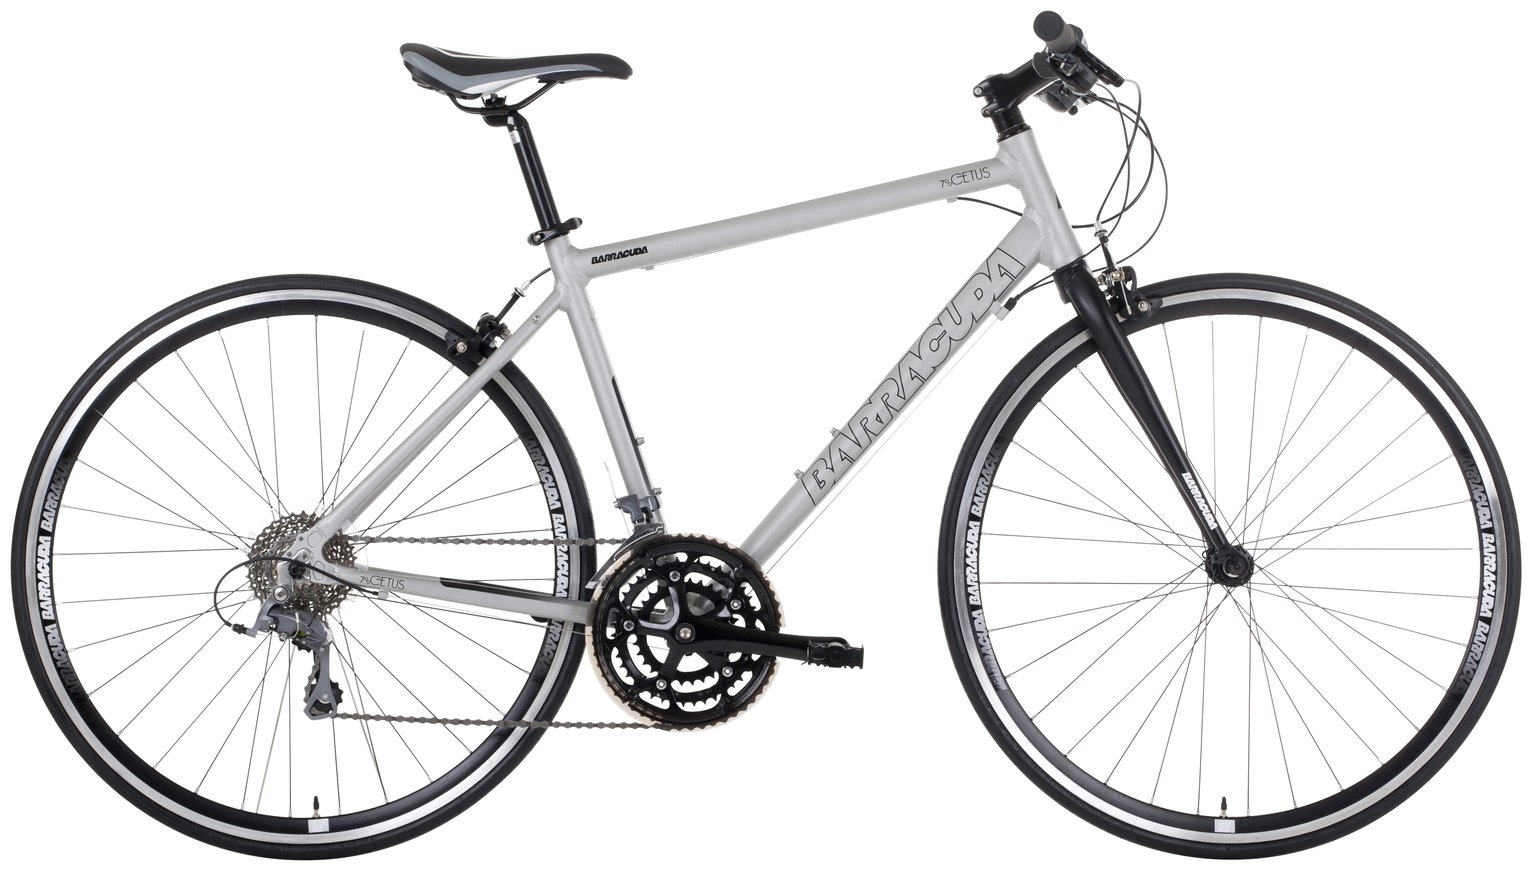 Image of Barracuda Cetus 700C 23.5 Inch Hybrid Commuter Bike - Mens